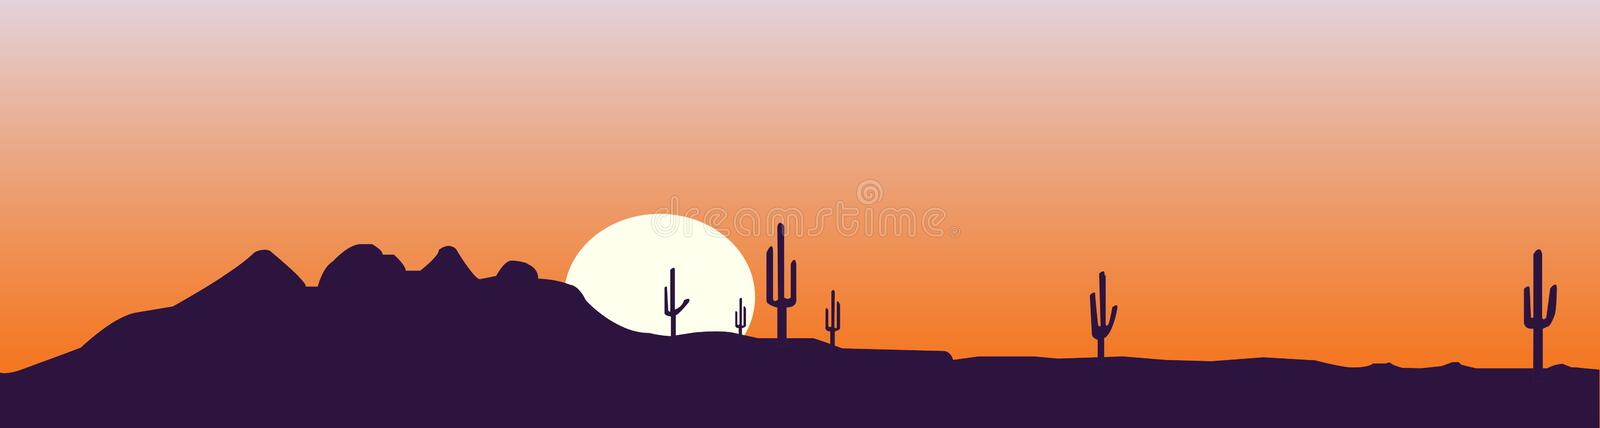 Arizona skyline at the sunset. Illustration of a skyline typical of Arizona or other desertic place. Sand, cactus and sun